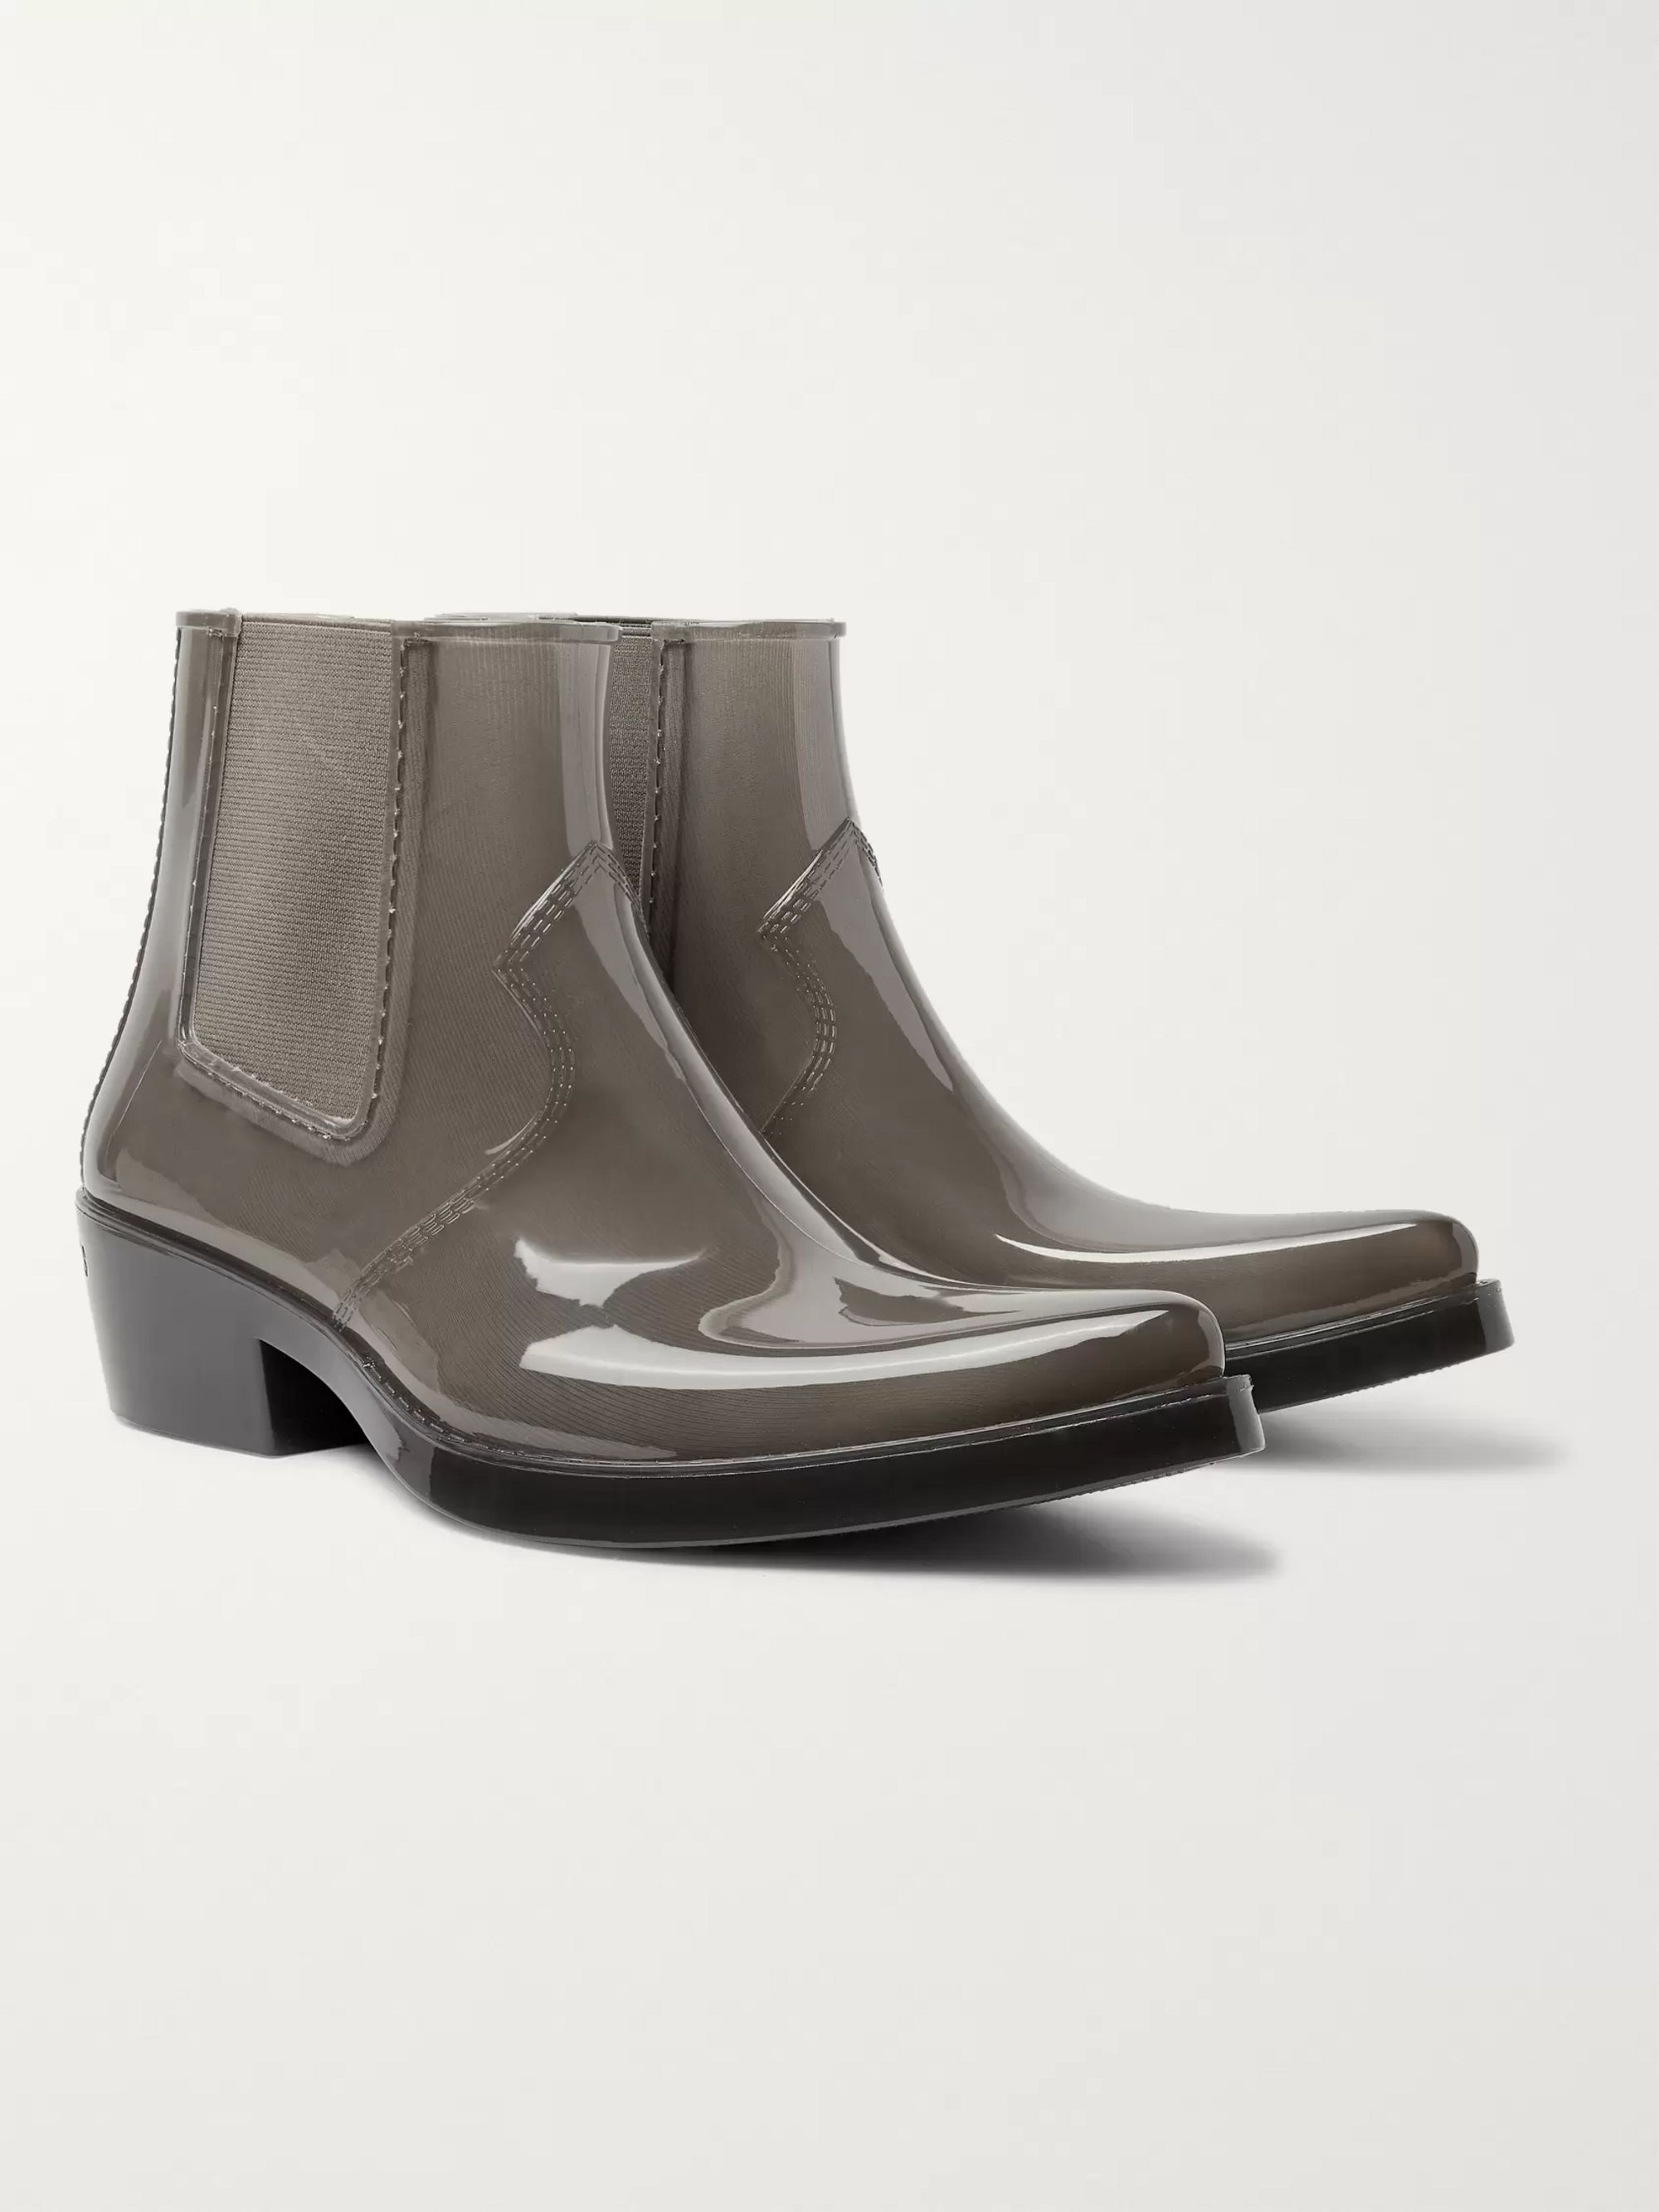 Cole Rubber Boots Calvin Klein 205W39Nyc Chelsea Boots Shoes